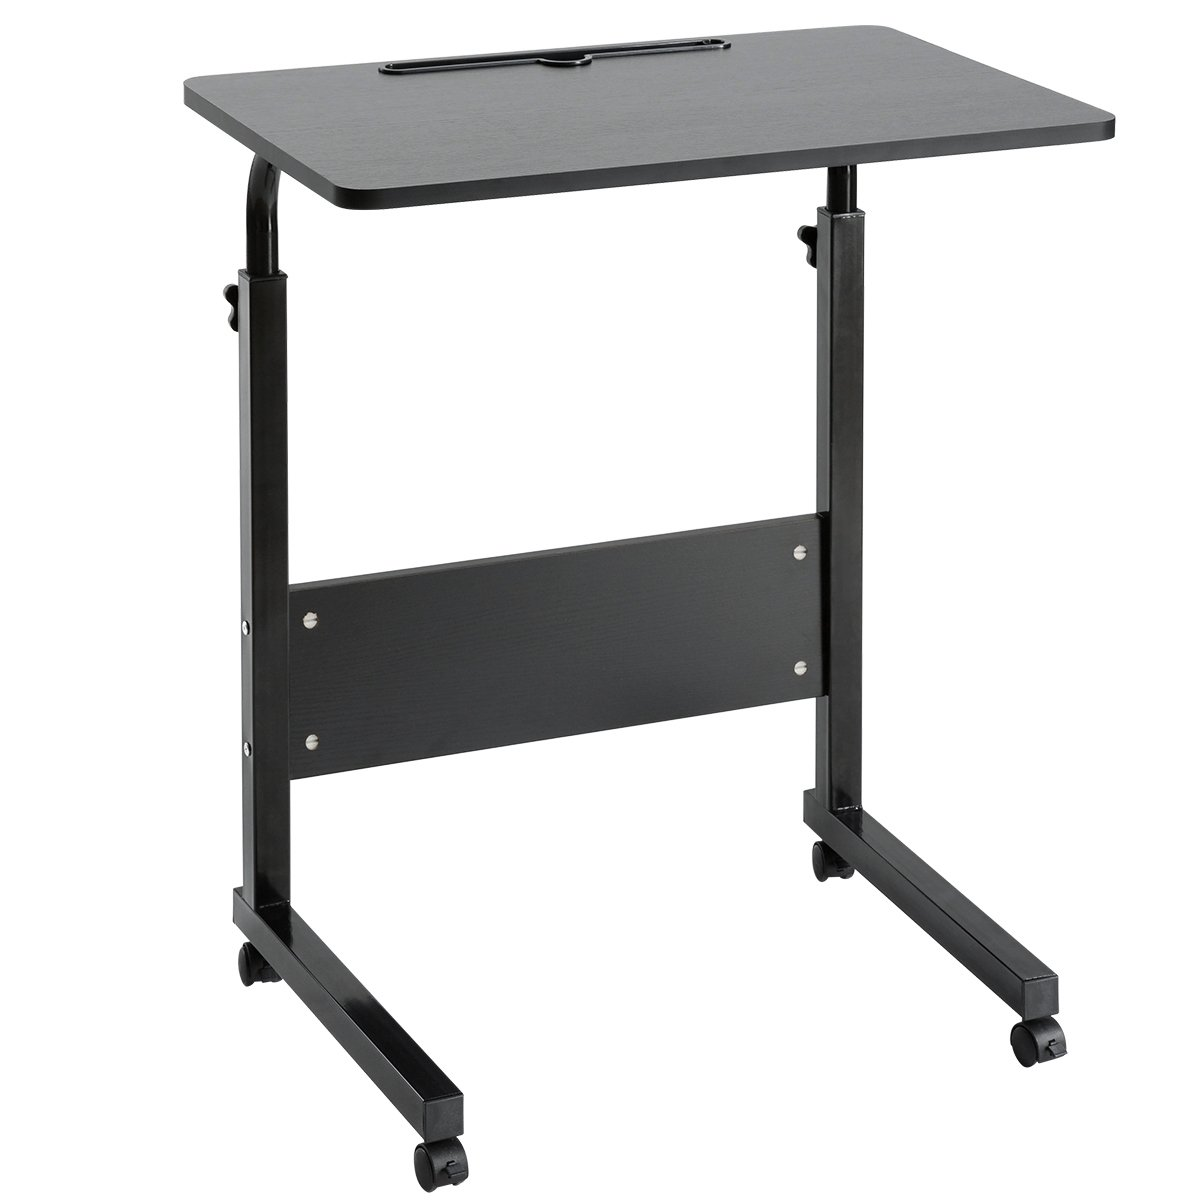 Picture of: Bedroom Bed Side C Shape Small Wooden Top Metal Frame Adjustable Height Study Laptop Desk Table With Wheels For Kids Study Buy Desk Table With Wheels Adjustable Study Table Table For Kids Study